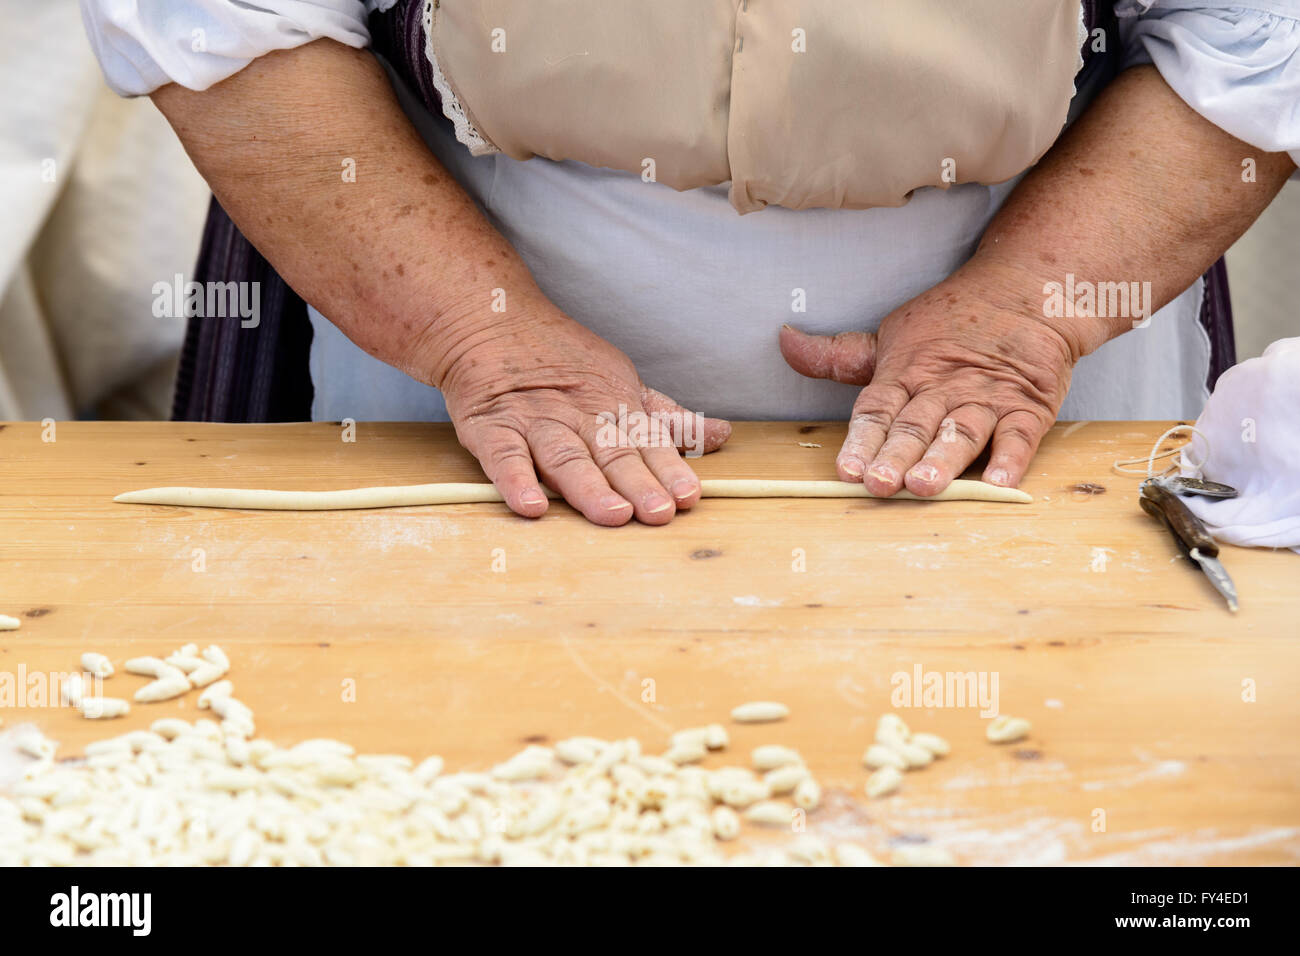 Gnocchi pasta of Sardinia, prepared by hand from old cook. Stock Photo